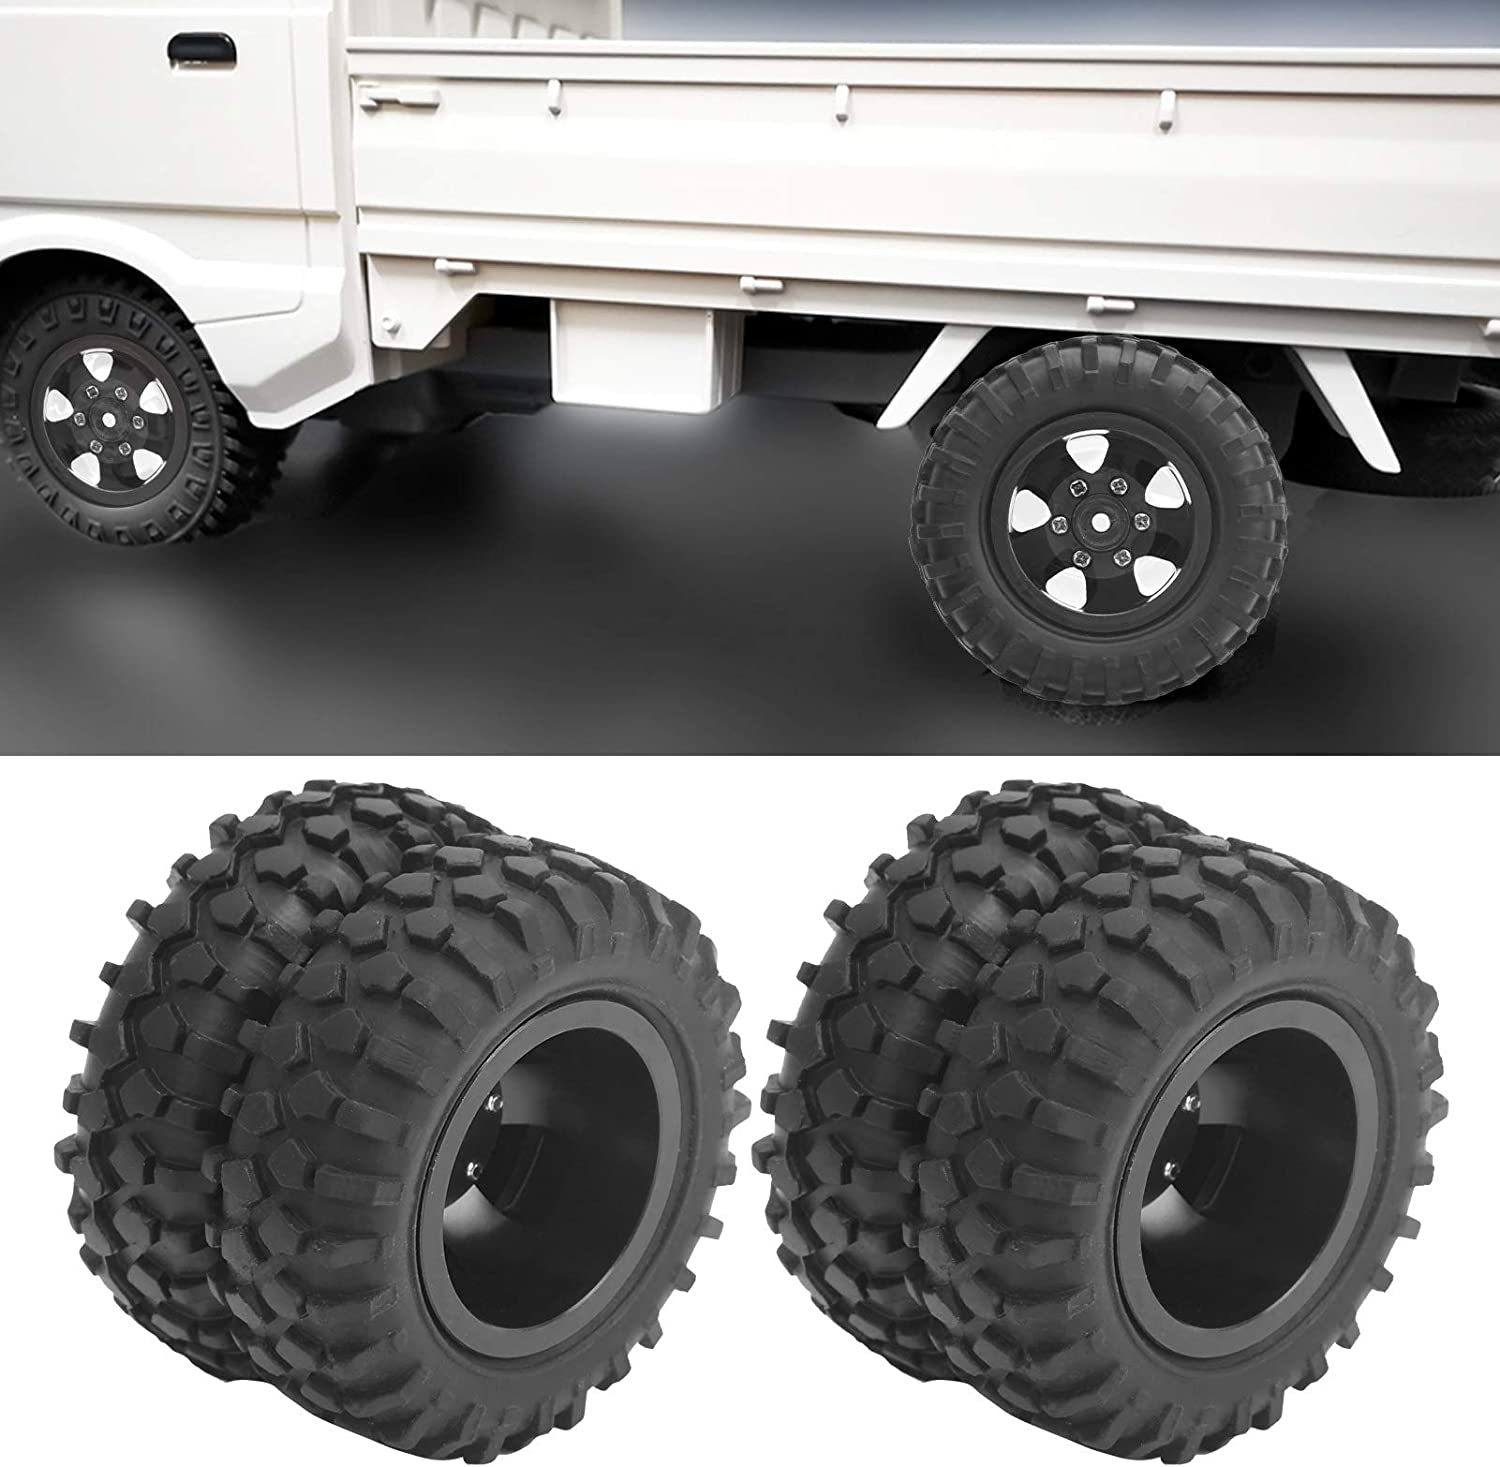 Snufeve 1 10 Wheel New York Mall Tire Good Anti‑Slip Effect Rear Tires RC P Limited time for free shipping